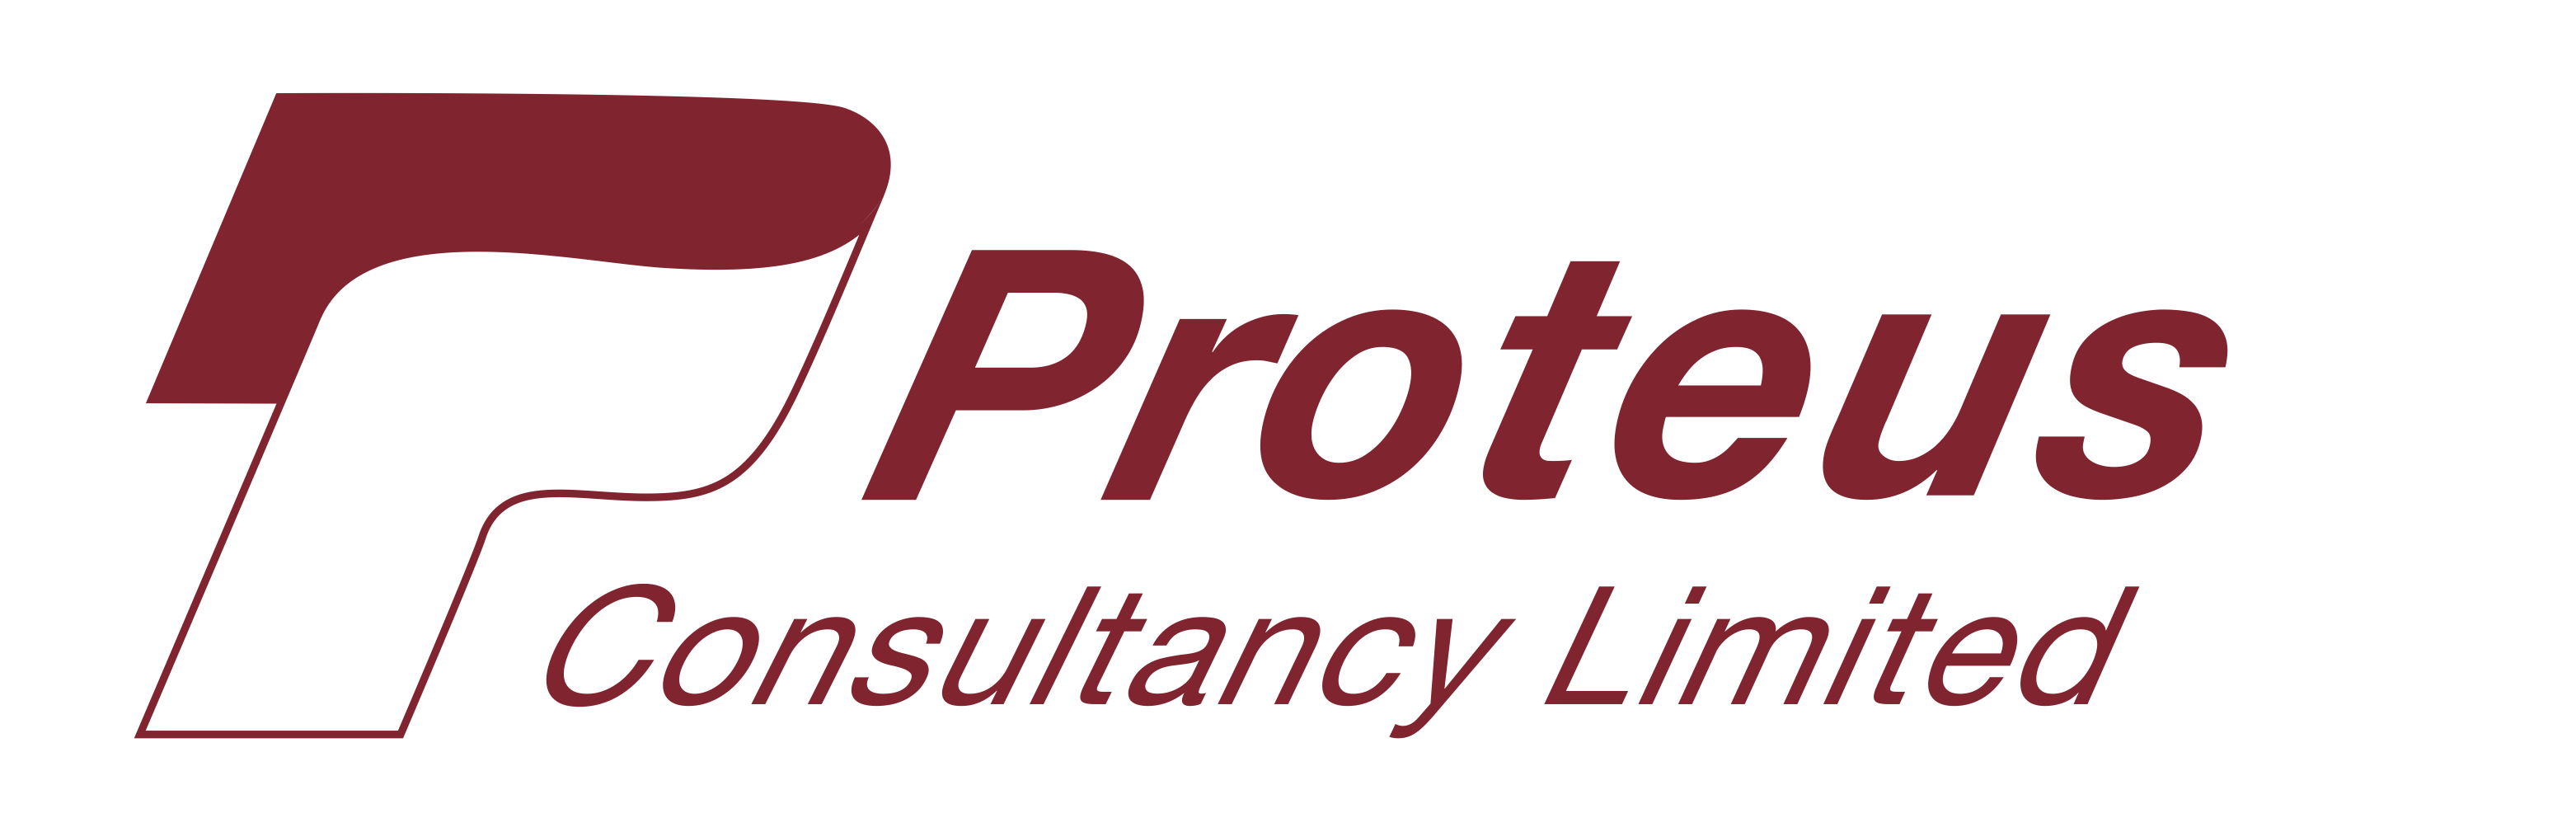 You and Proteus | Protecting your livelihood